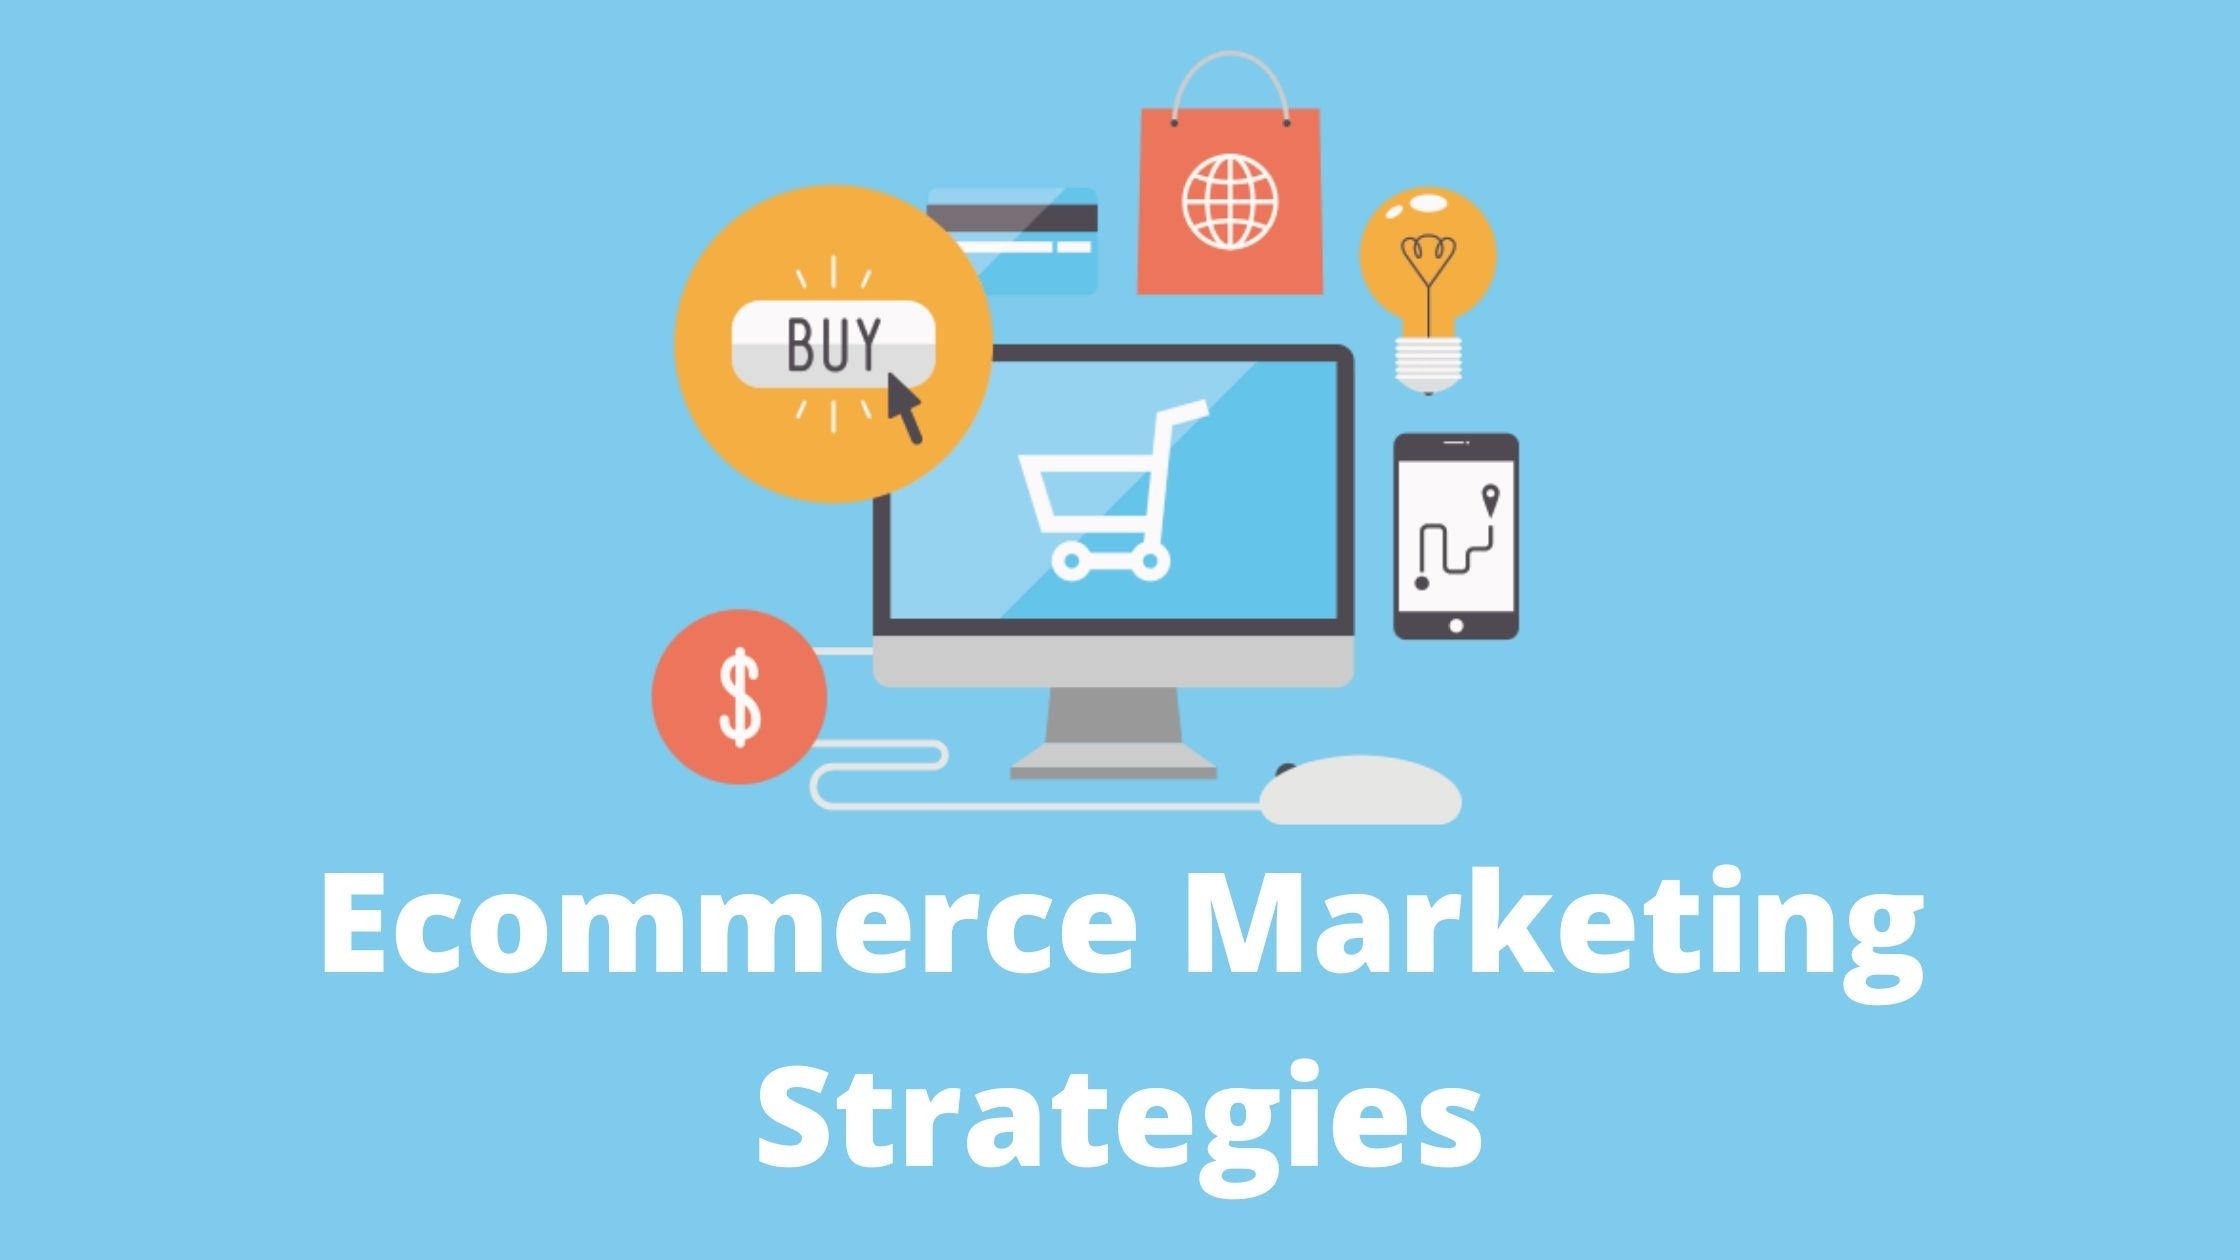 Ecommcere marketing strategies to boost sales